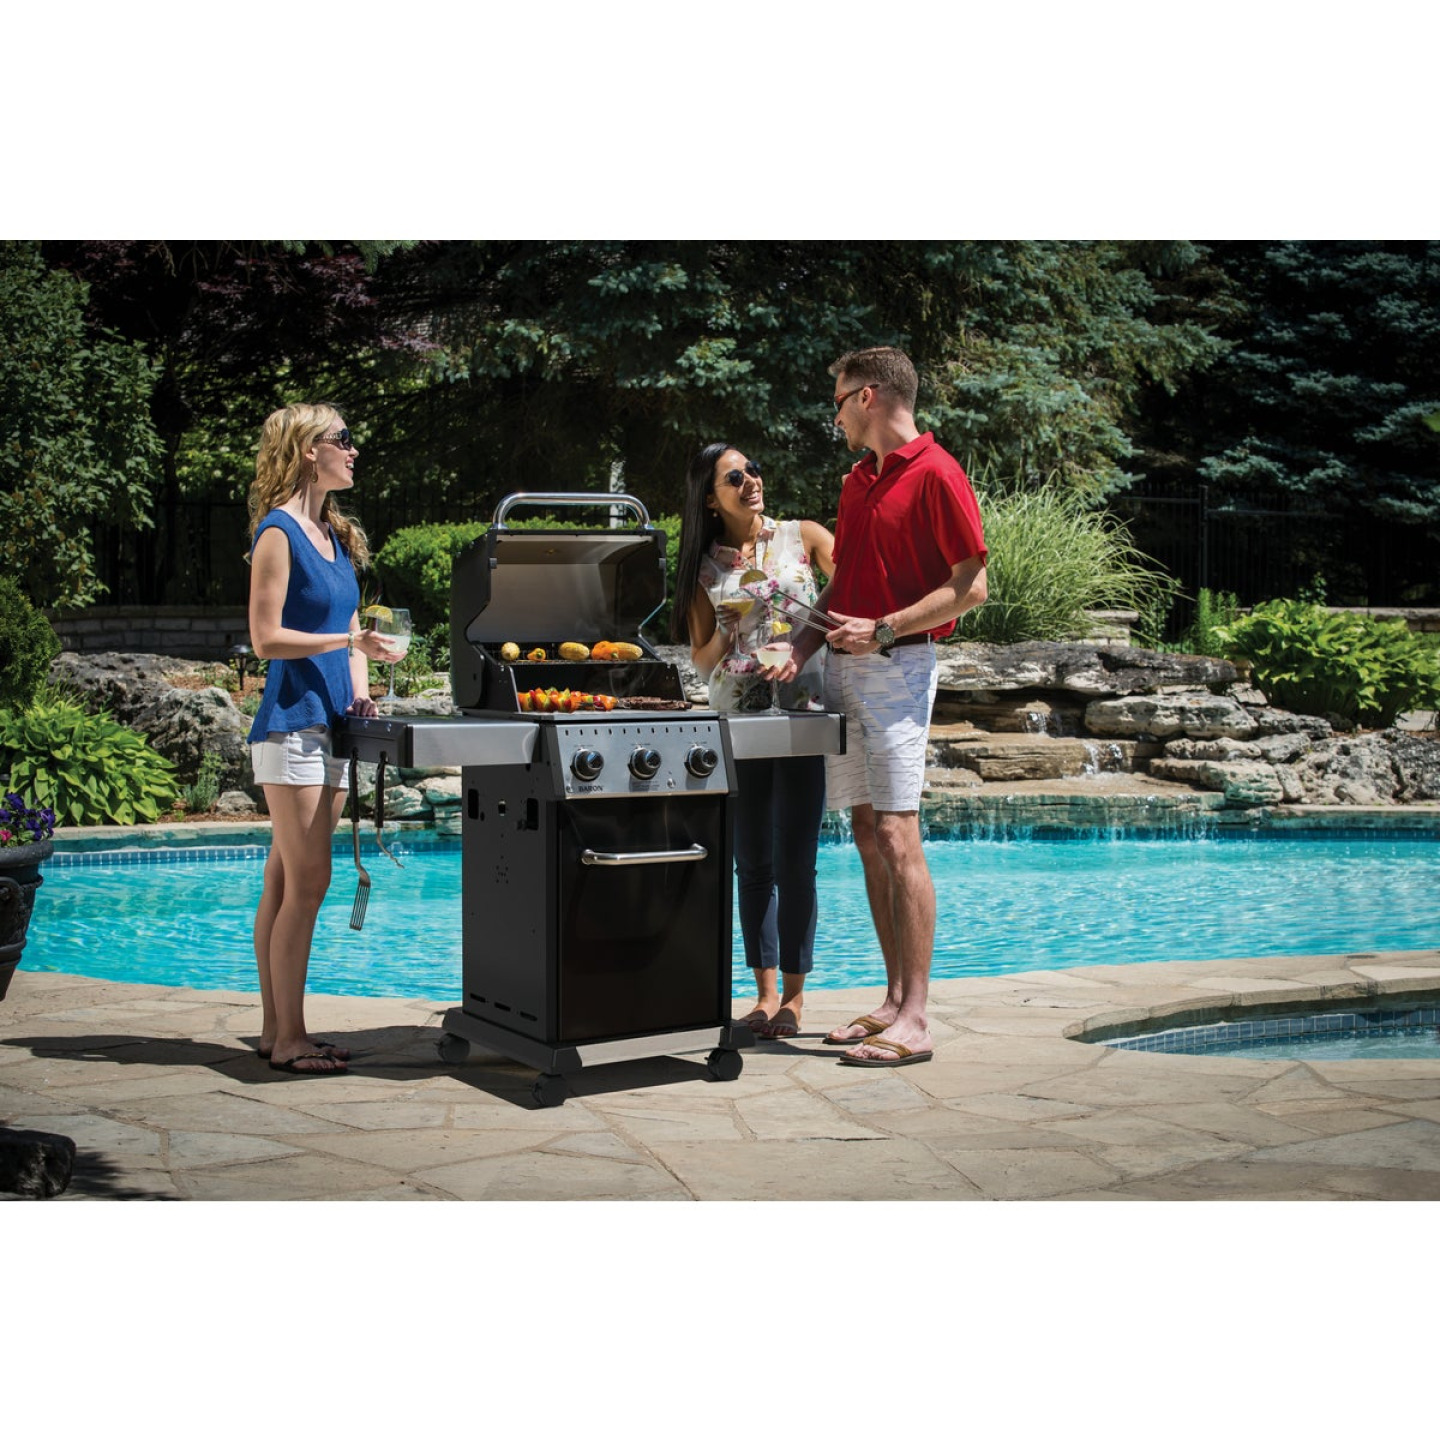 Broil King Baron 320 Pro 3-Burner Black 32,000 BTU LP Gas Grill Image 2